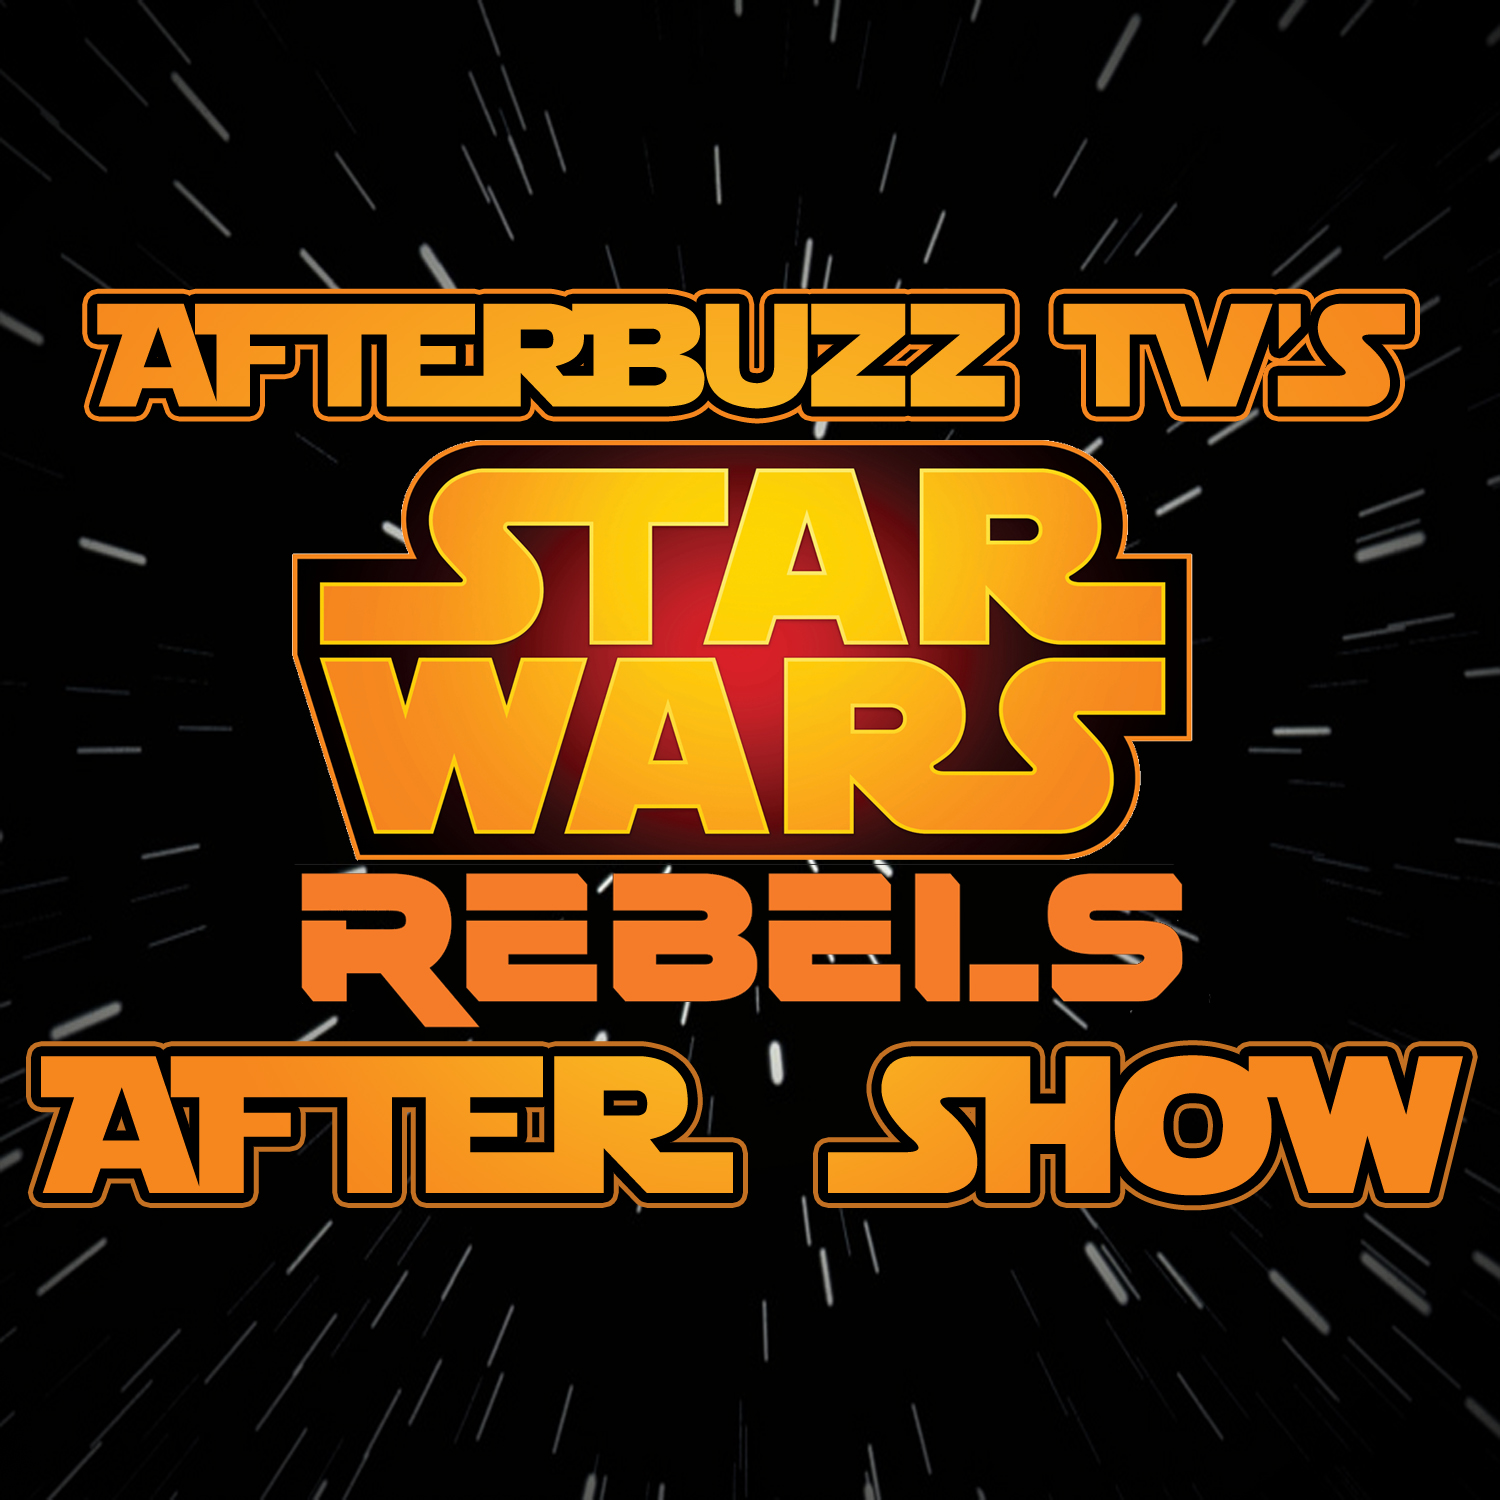 Star Wars Rebels After Show